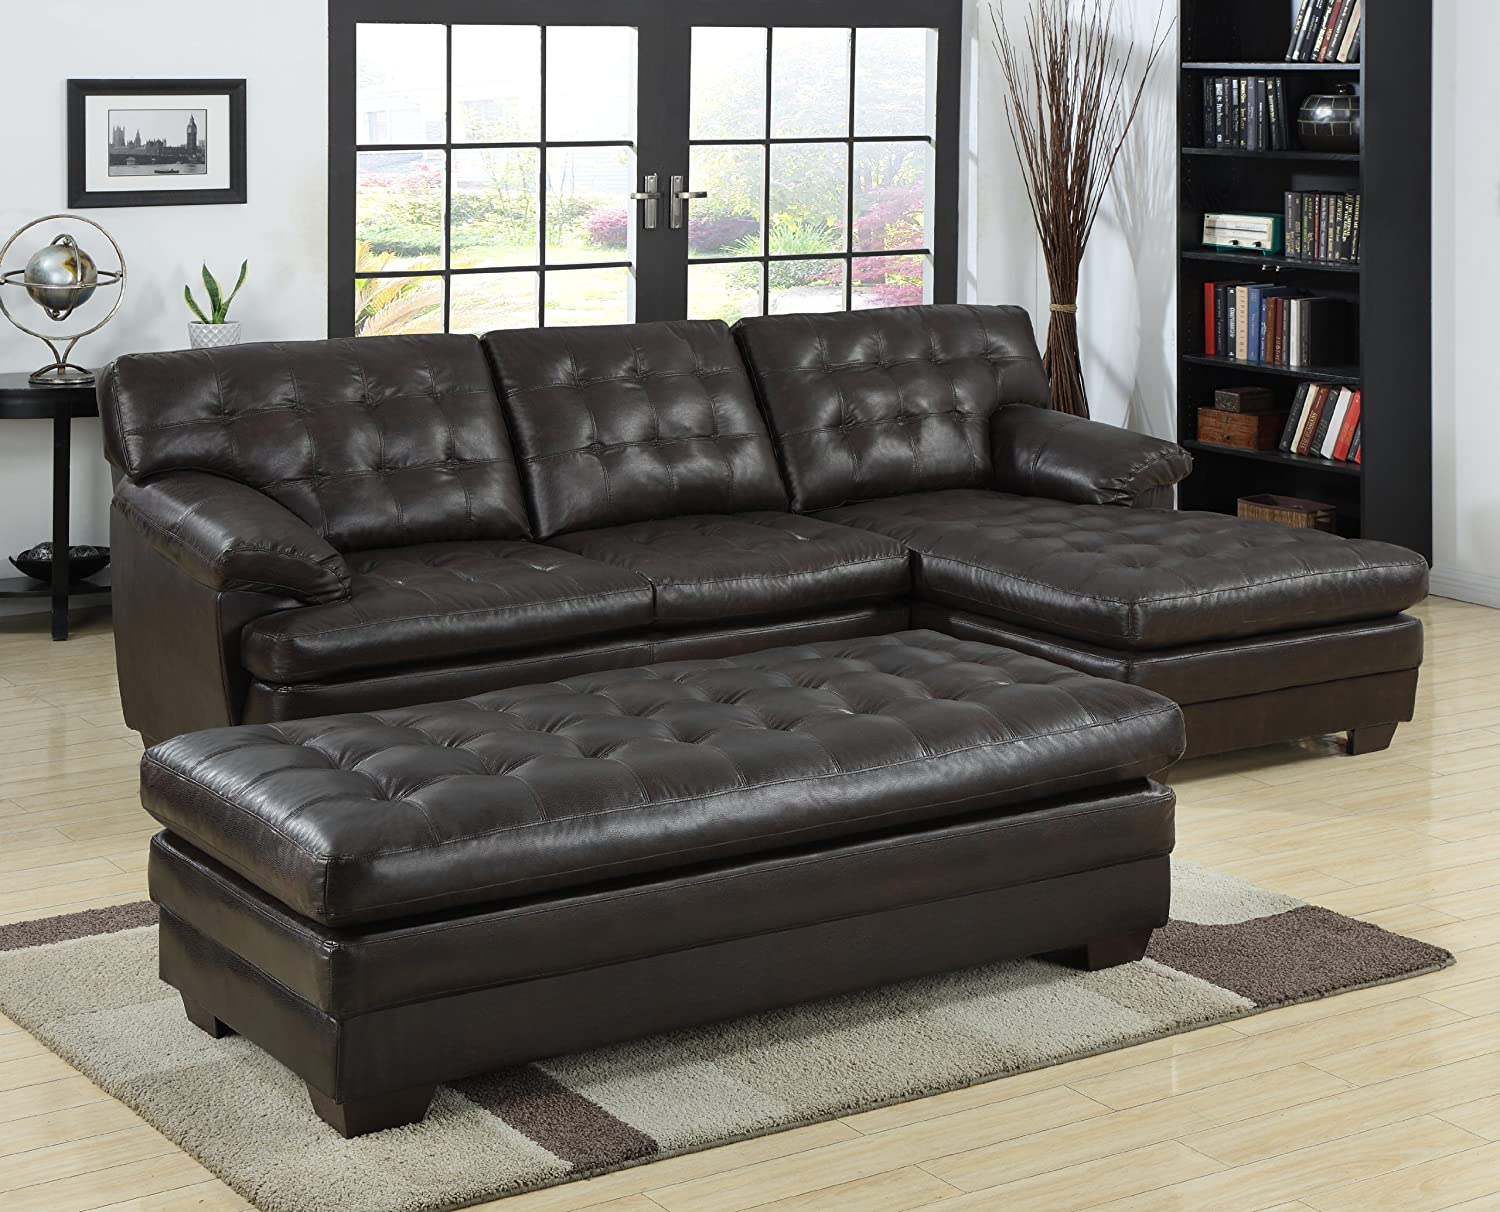 Amazon.com Homelegance 9739 Channel-Tufted 2-Piece Sectional Sofa Set Dark Brown with Bonded Leather Kitchen u0026 Dining : leather sofa with chaise lounge - Sectionals, Sofas & Couches